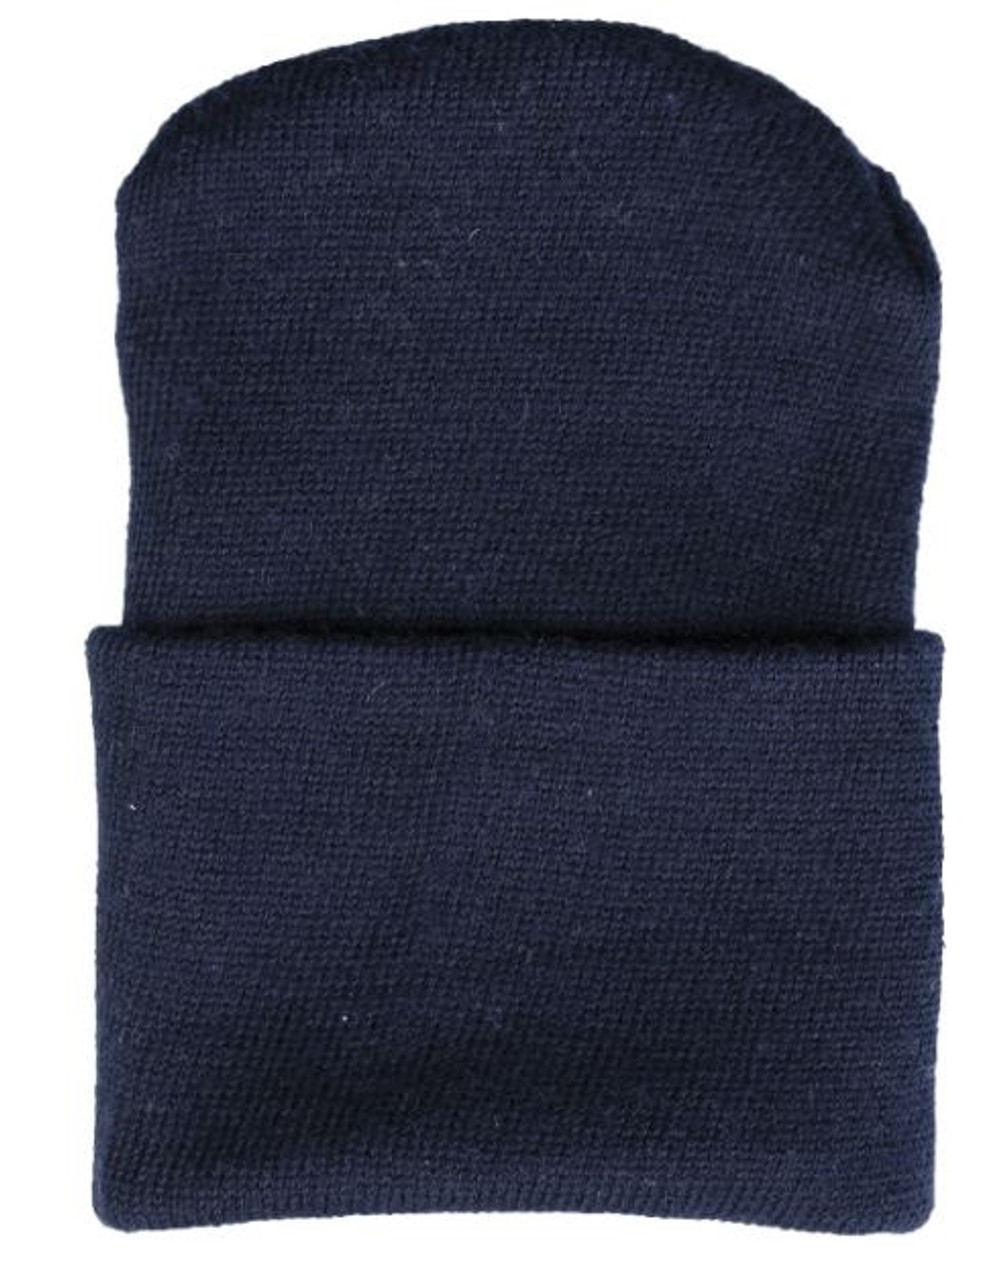 Swedish Military Blue Watch Cap from Hessen Antique